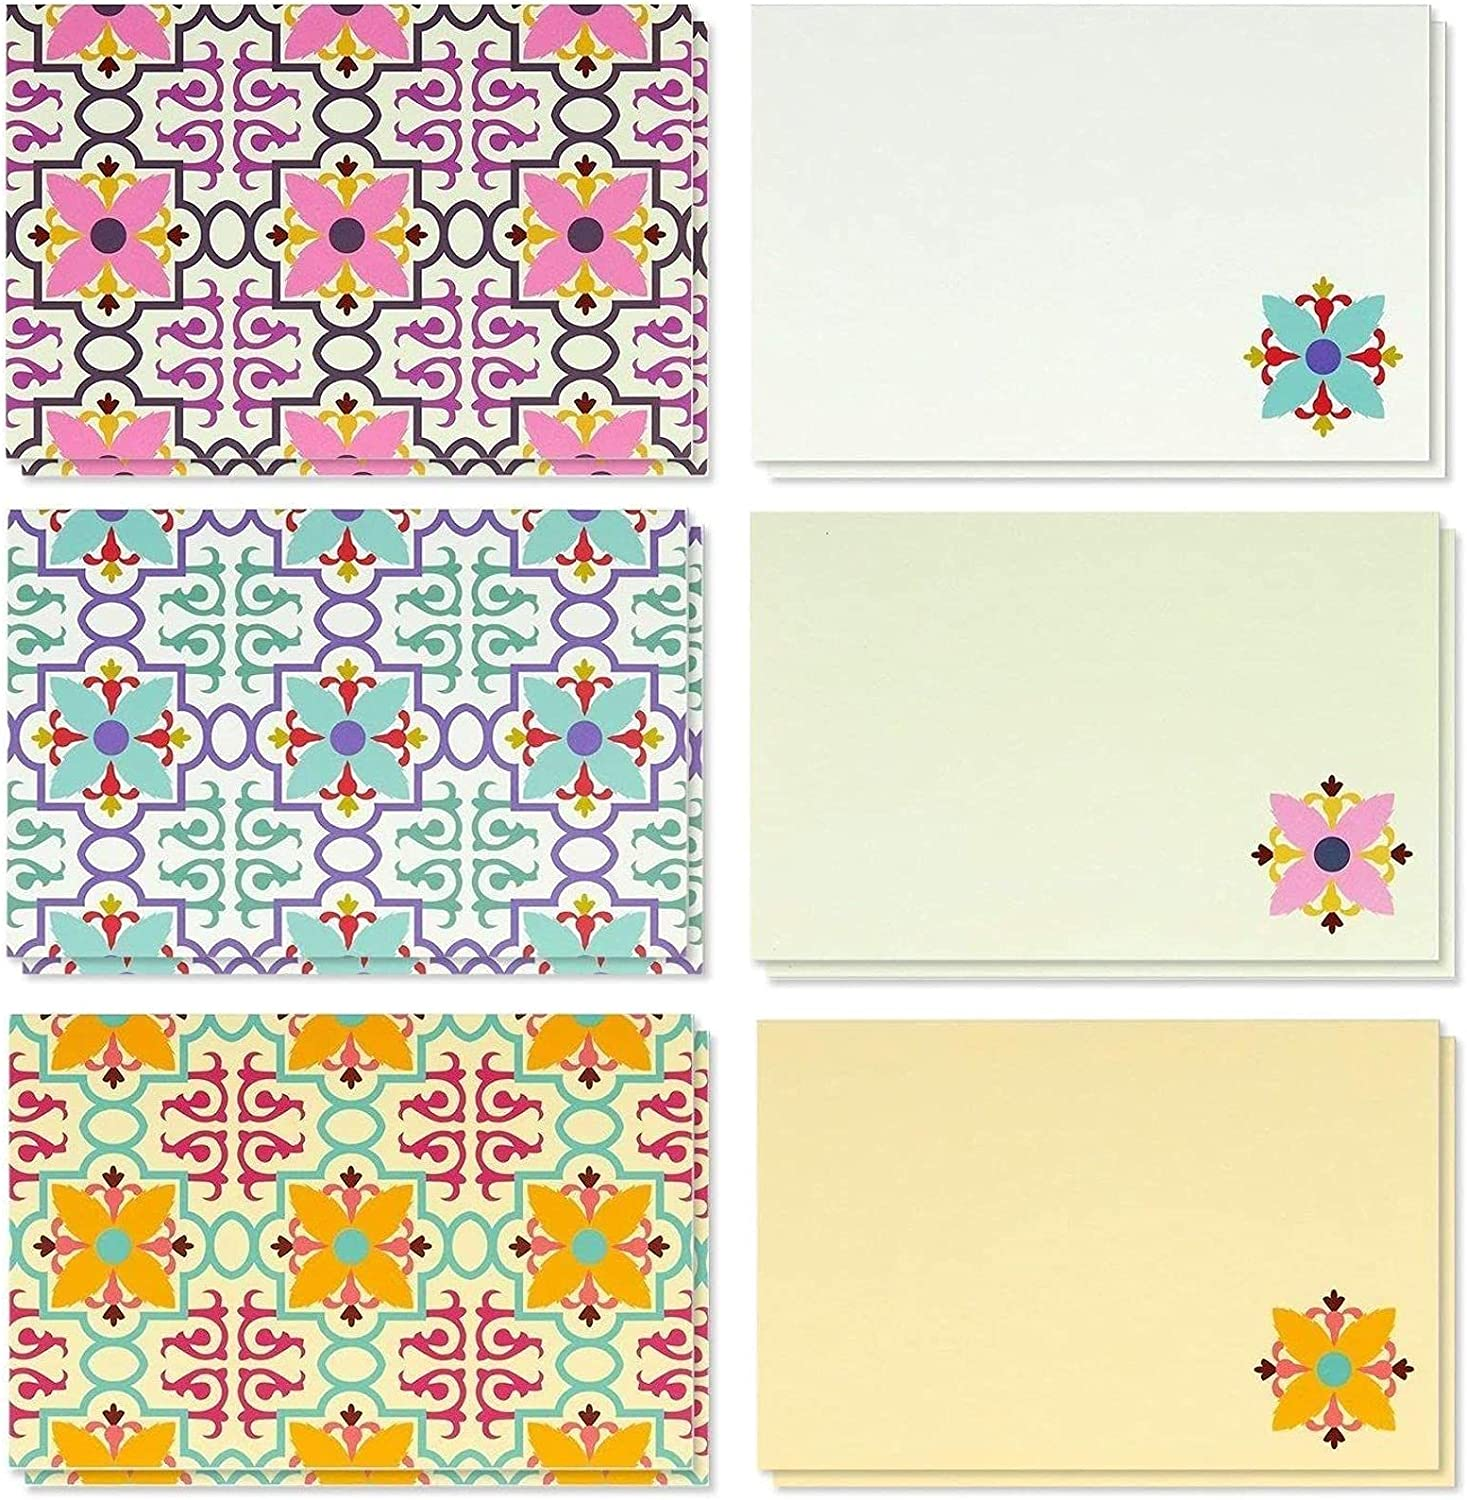 Vintage Floral Blank Greeting Cards with Envelopes, All Occasion